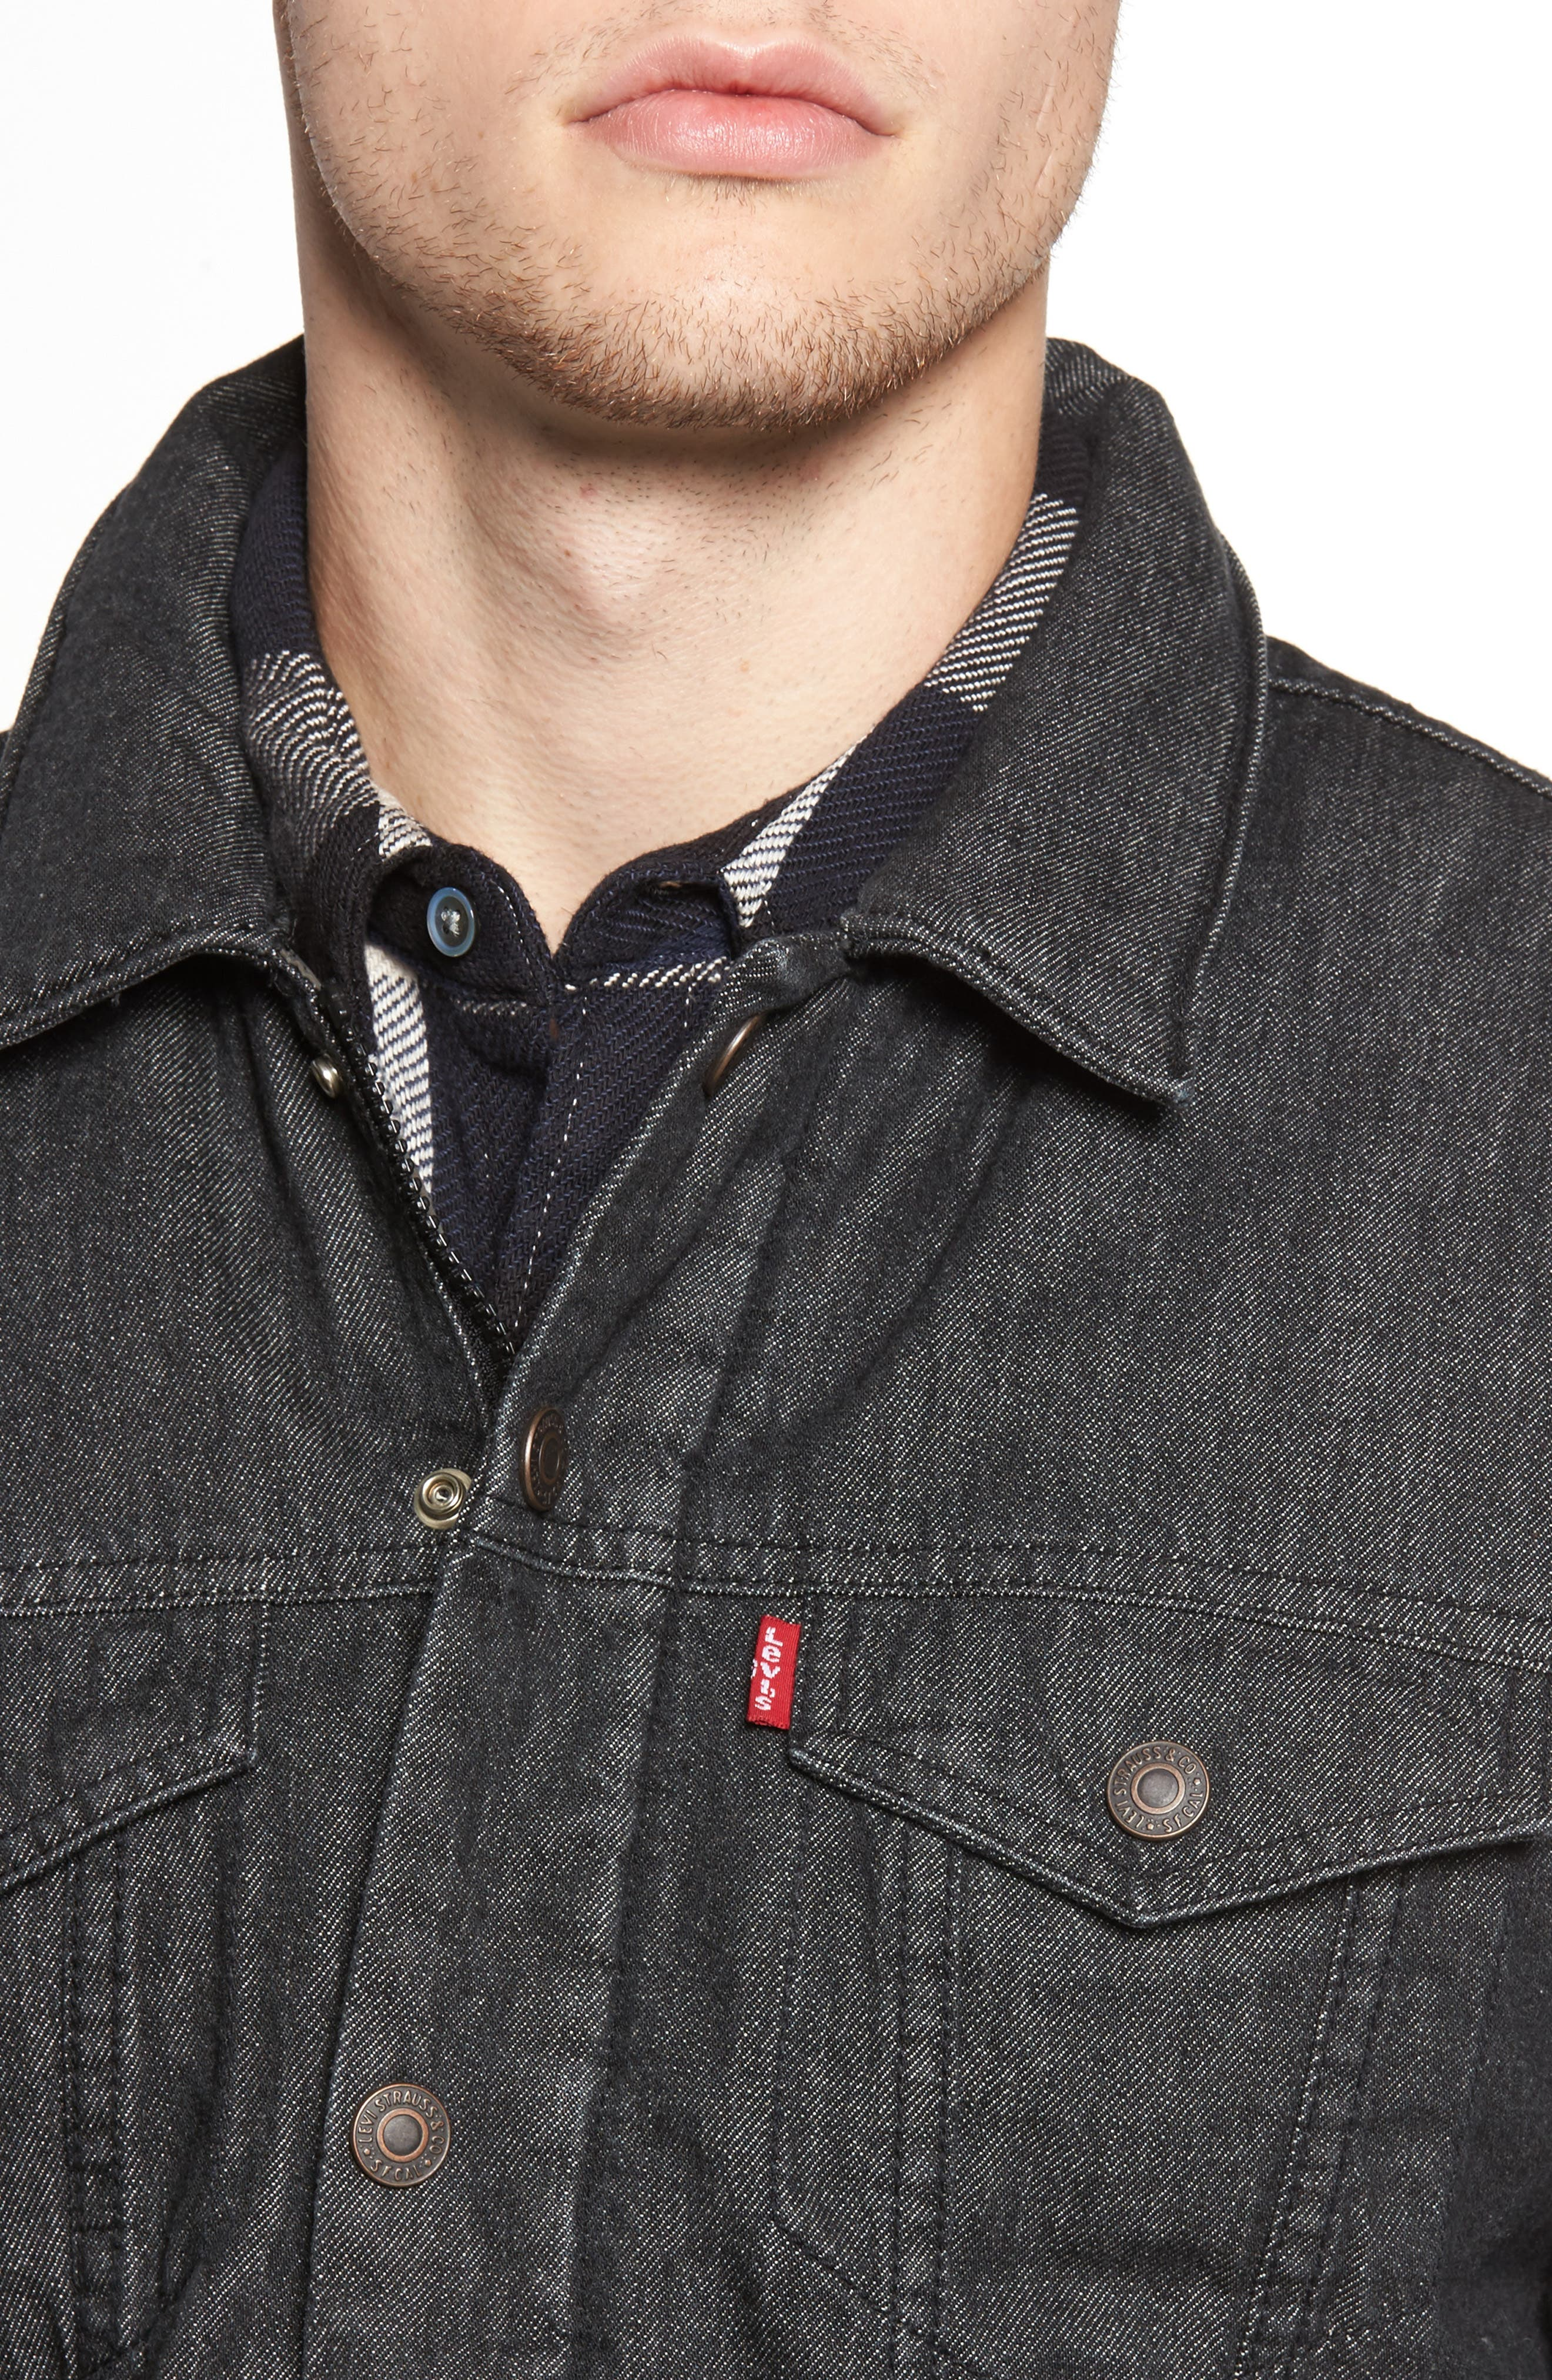 Down Insulated Trucker Jacket,                             Alternate thumbnail 4, color,                             001